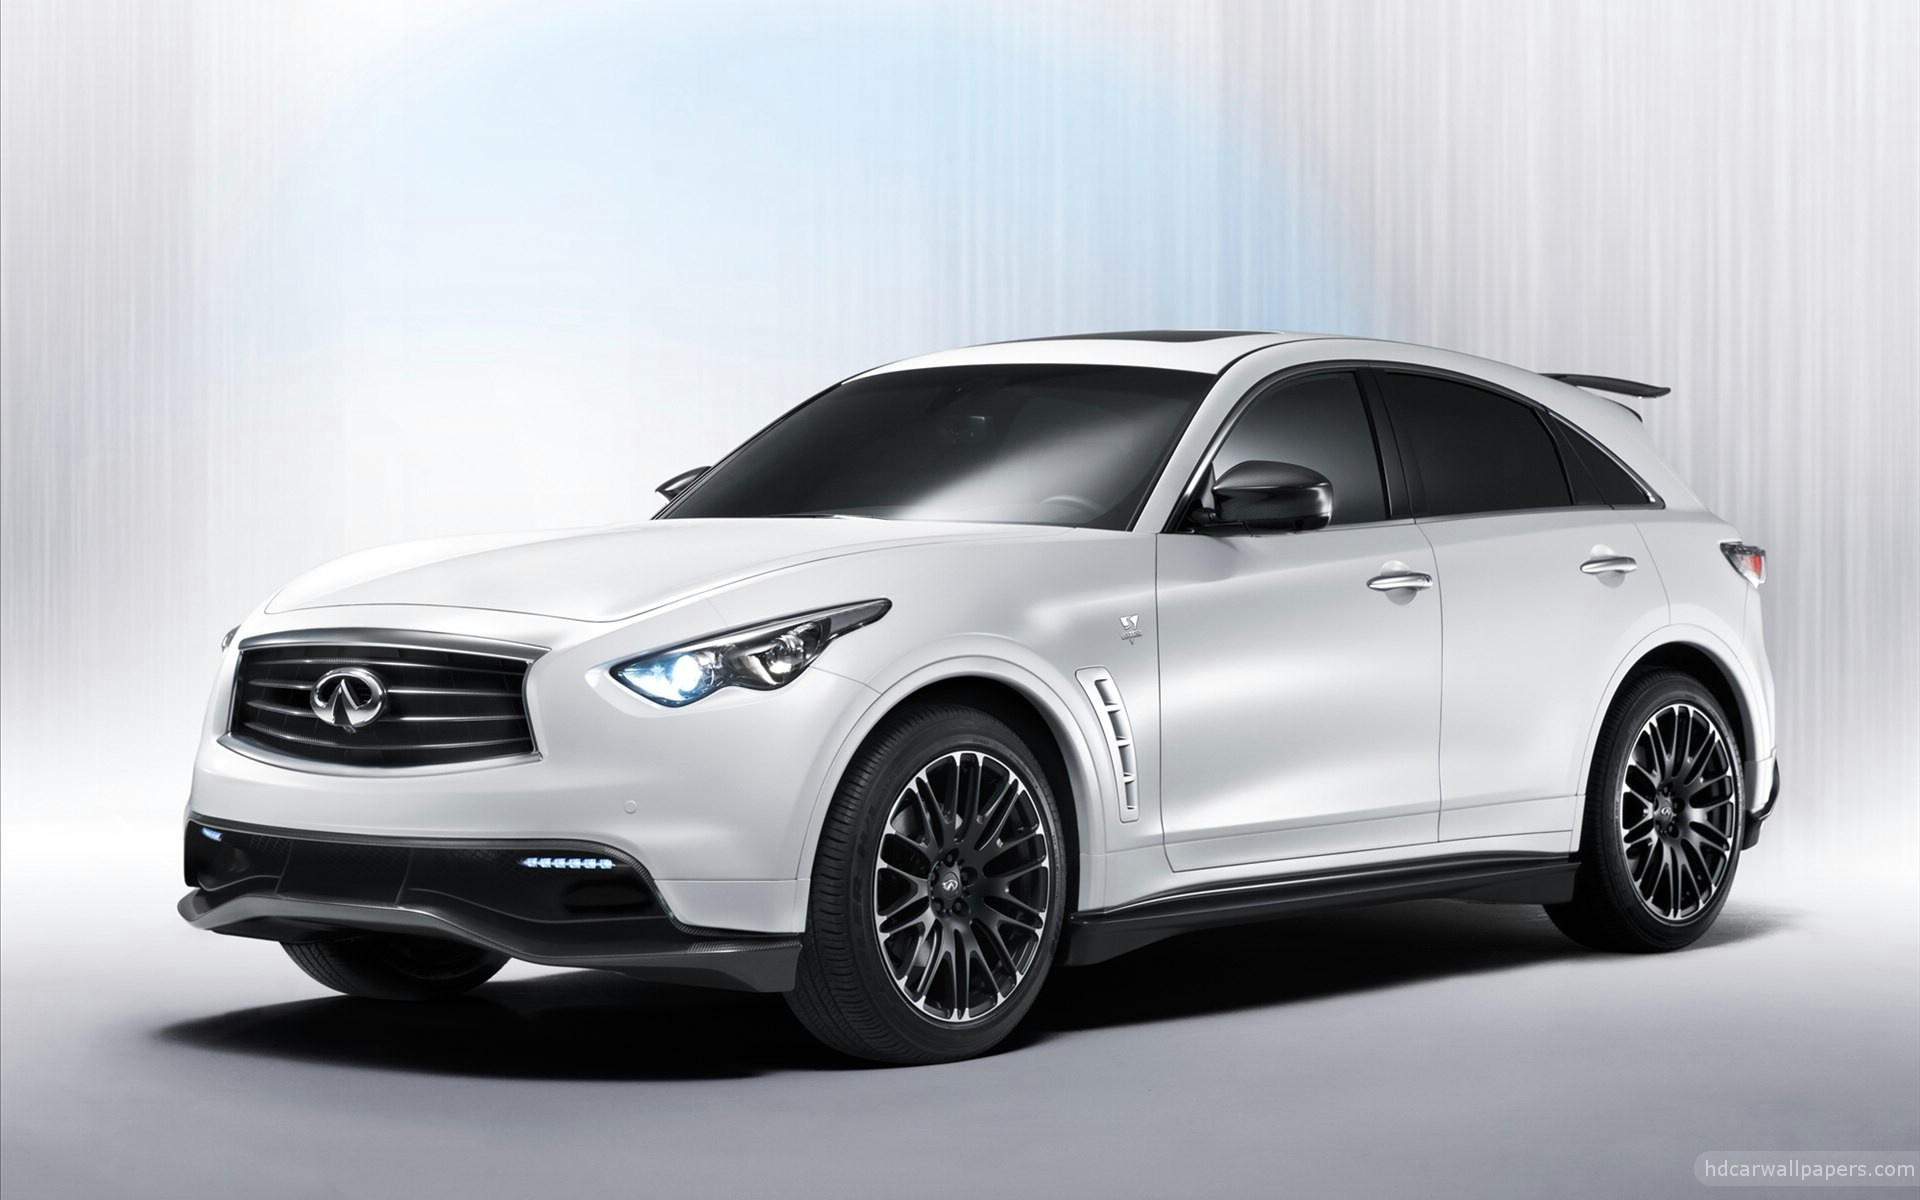 Infiniti Car Wallpapers for Windows 8 All for Windows 10 1920x1200